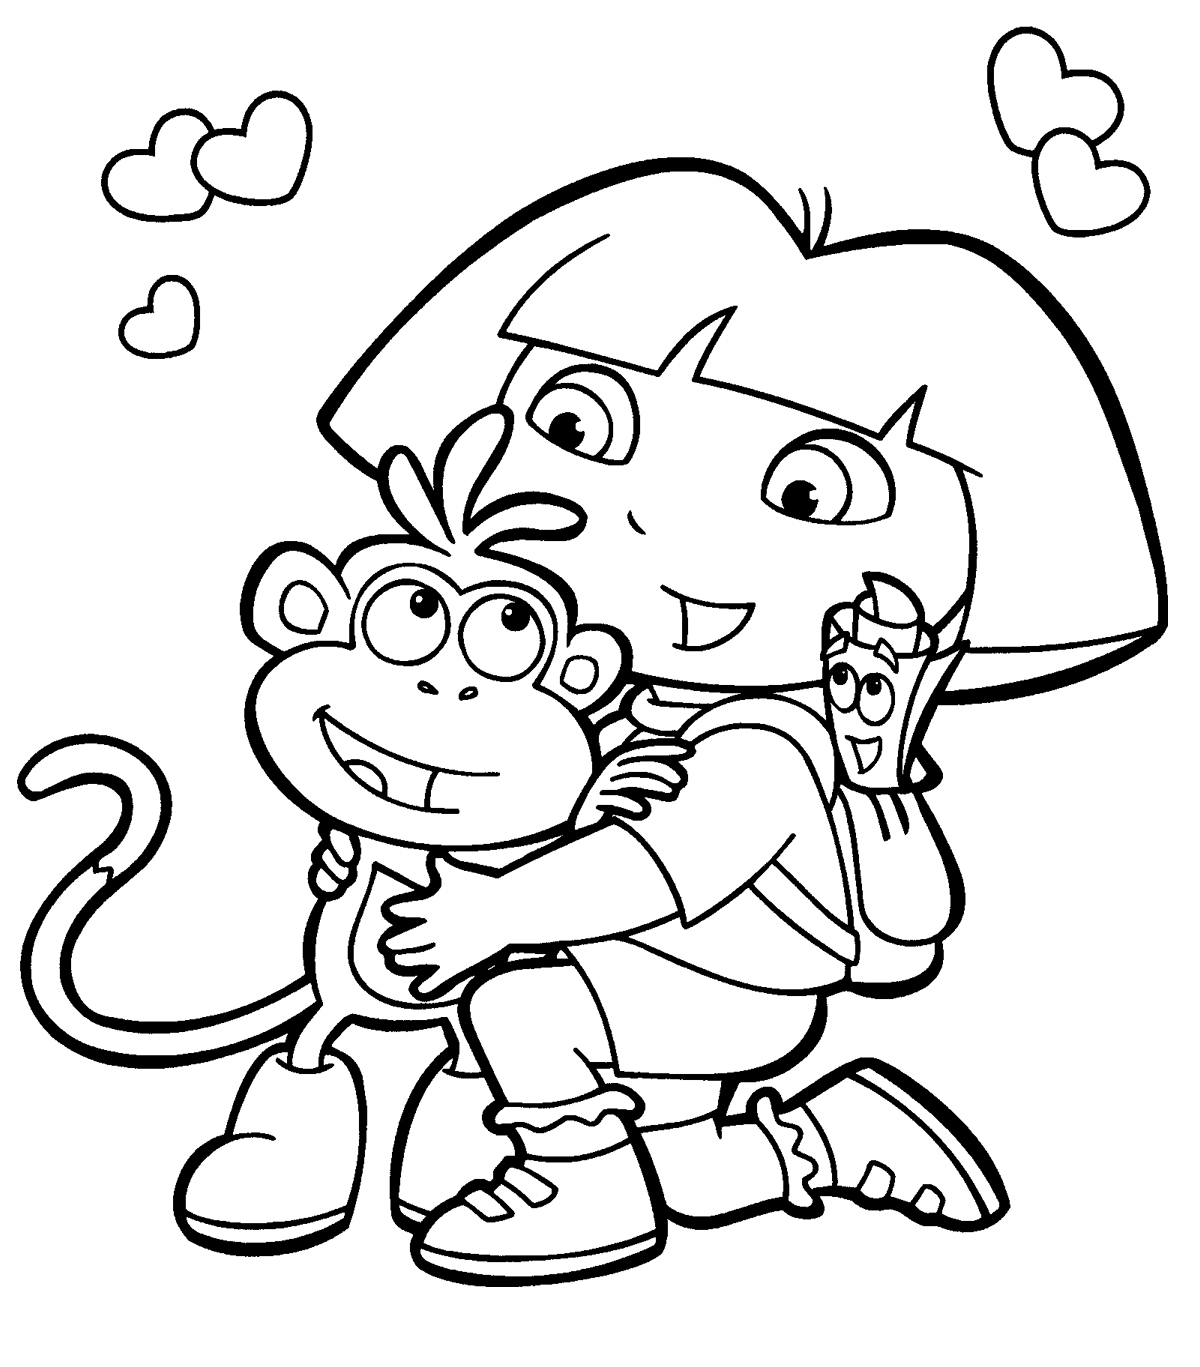 download dora the explorer coloring pages 15 print - Dora Explorer Coloring Pages Free Printable